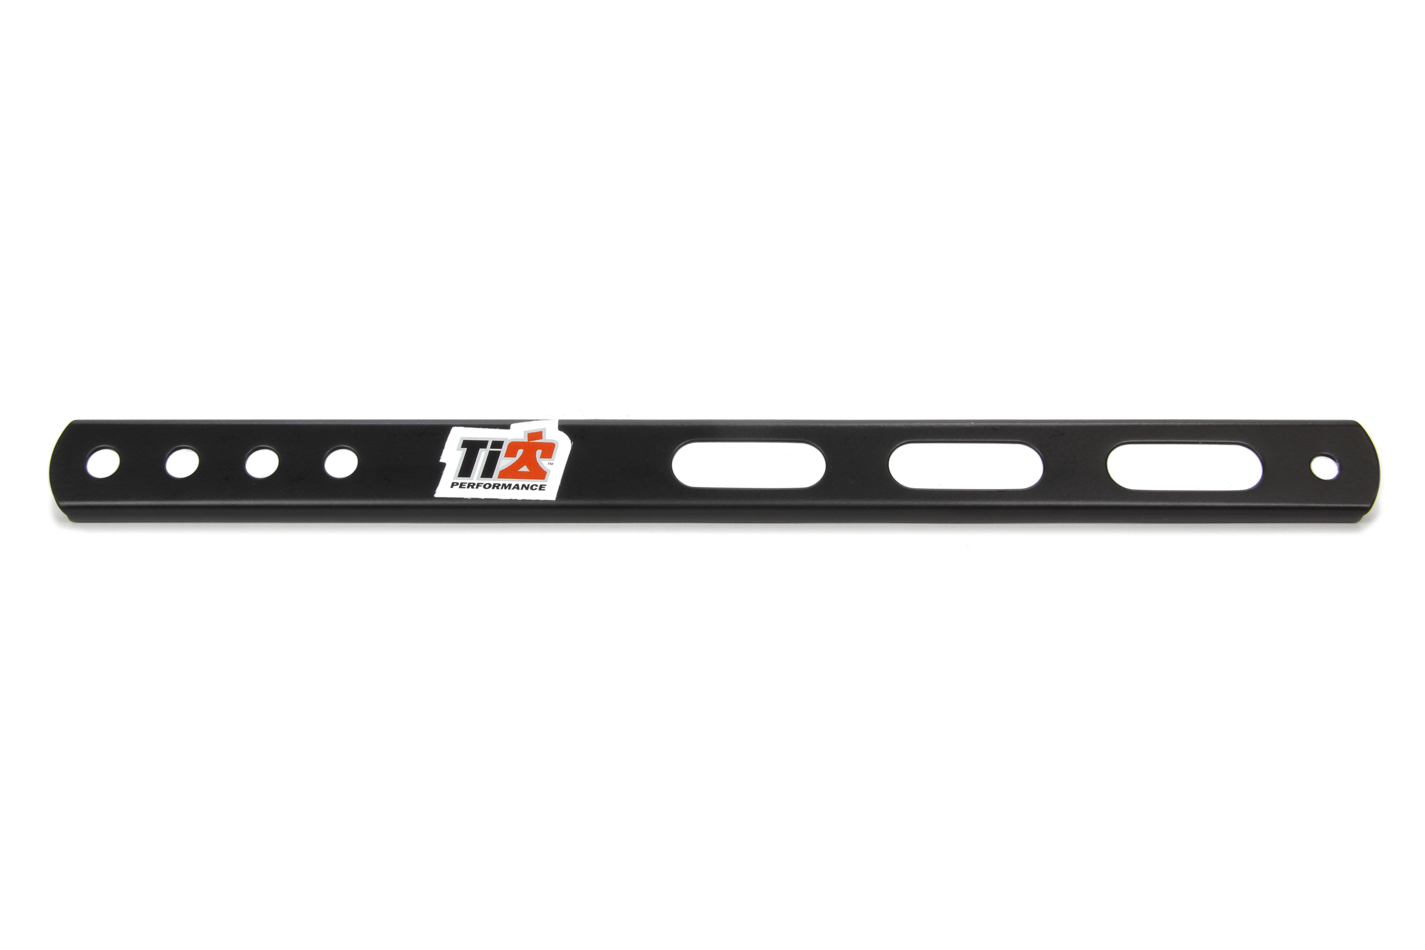 Ti22 PERFORMANCE 600 Nose Wing Post Outboard Black P/N -TIP3791